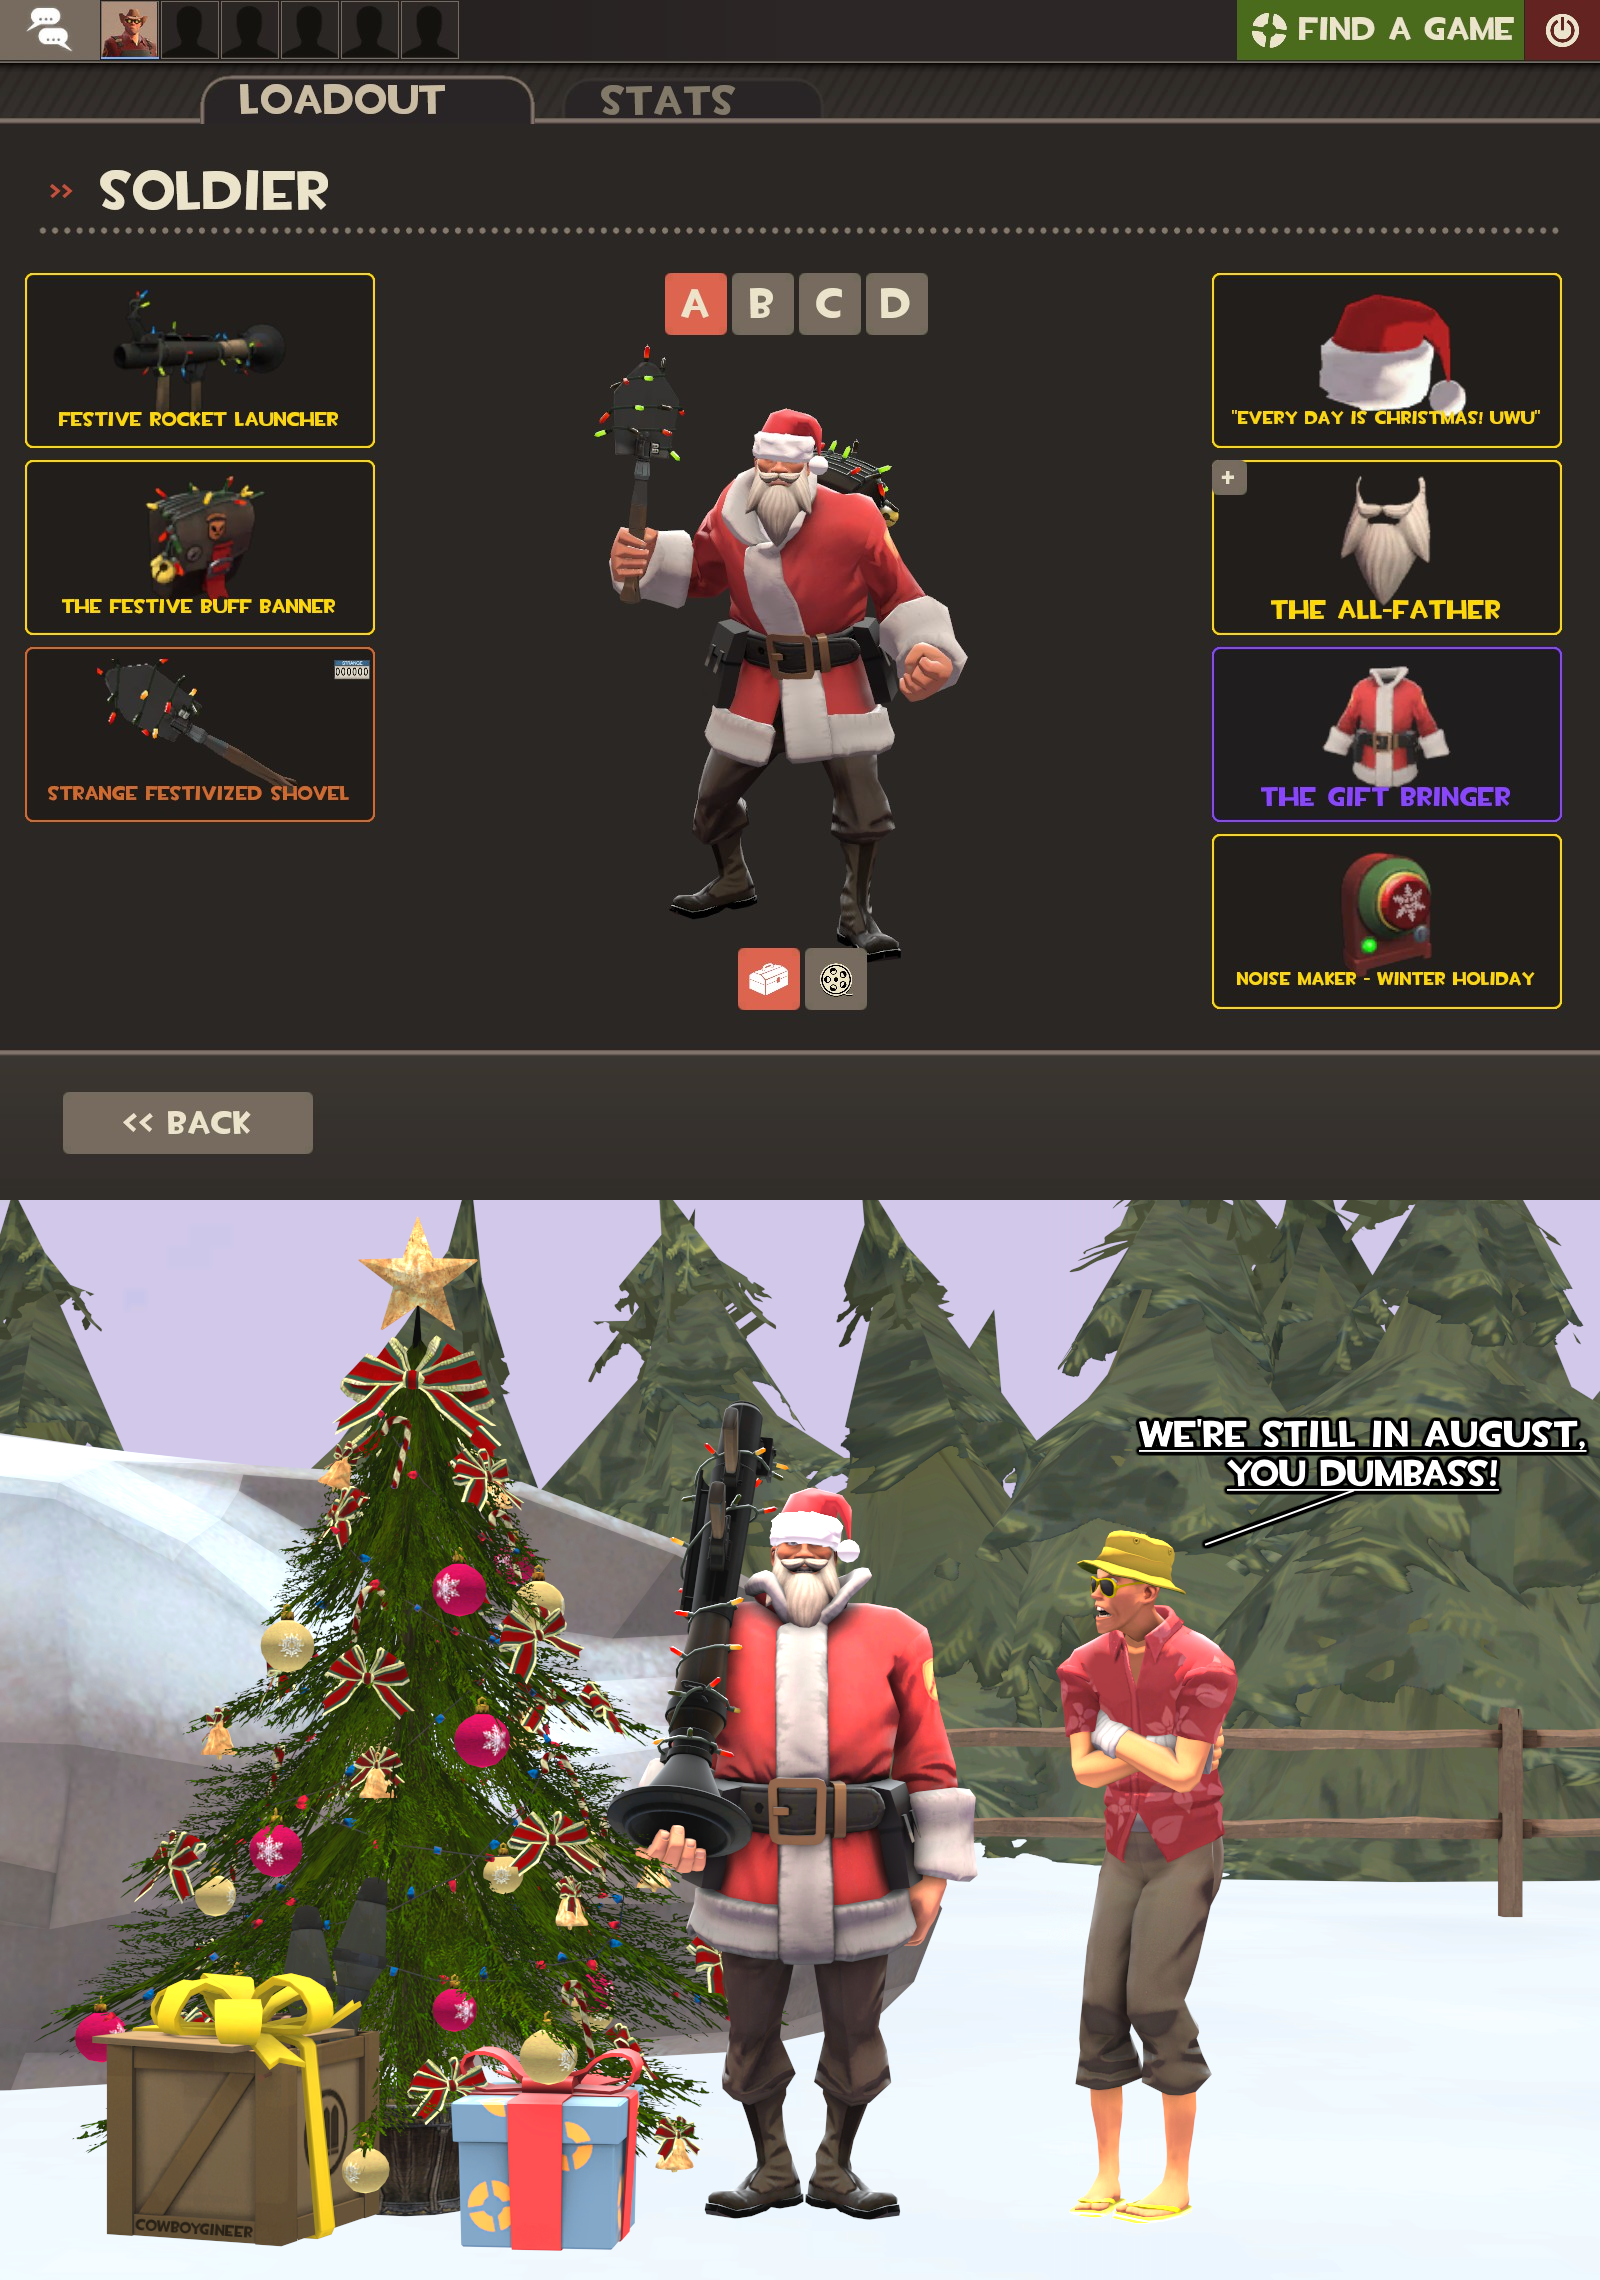 Christmas Noisemaker Tf2 2020 TF2 Loadout: Soldier Claus by Cowboygineer on DeviantArt